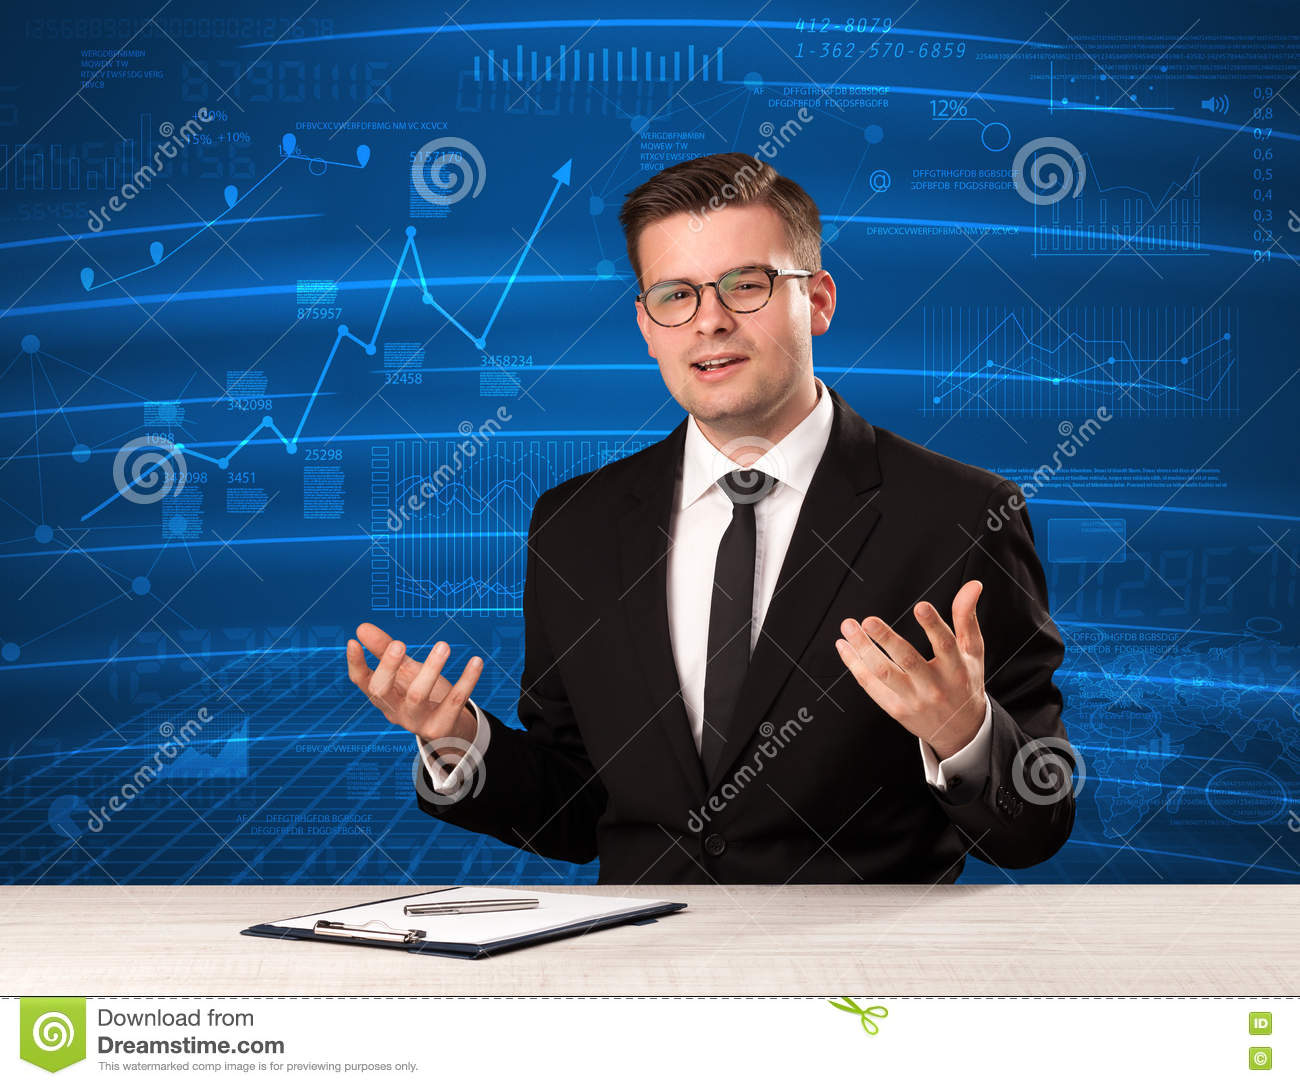 Stock data analyst in studio giving adivce on blue chart background